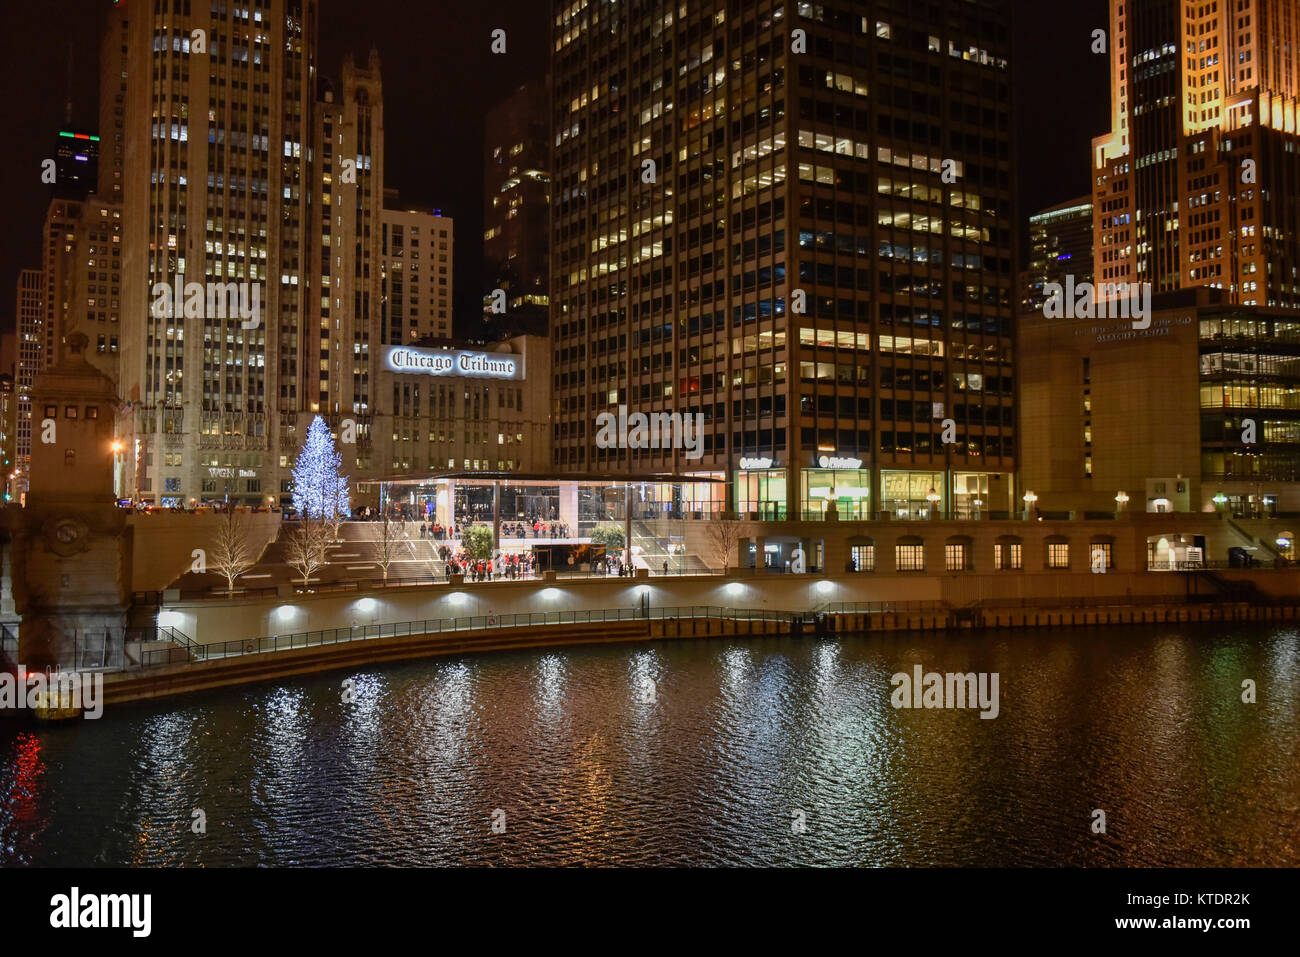 Chicago, USA.  21 December 2017.  The new flagship Apple store, designed by Foster + Partners, located on the riverfront - Stock Image